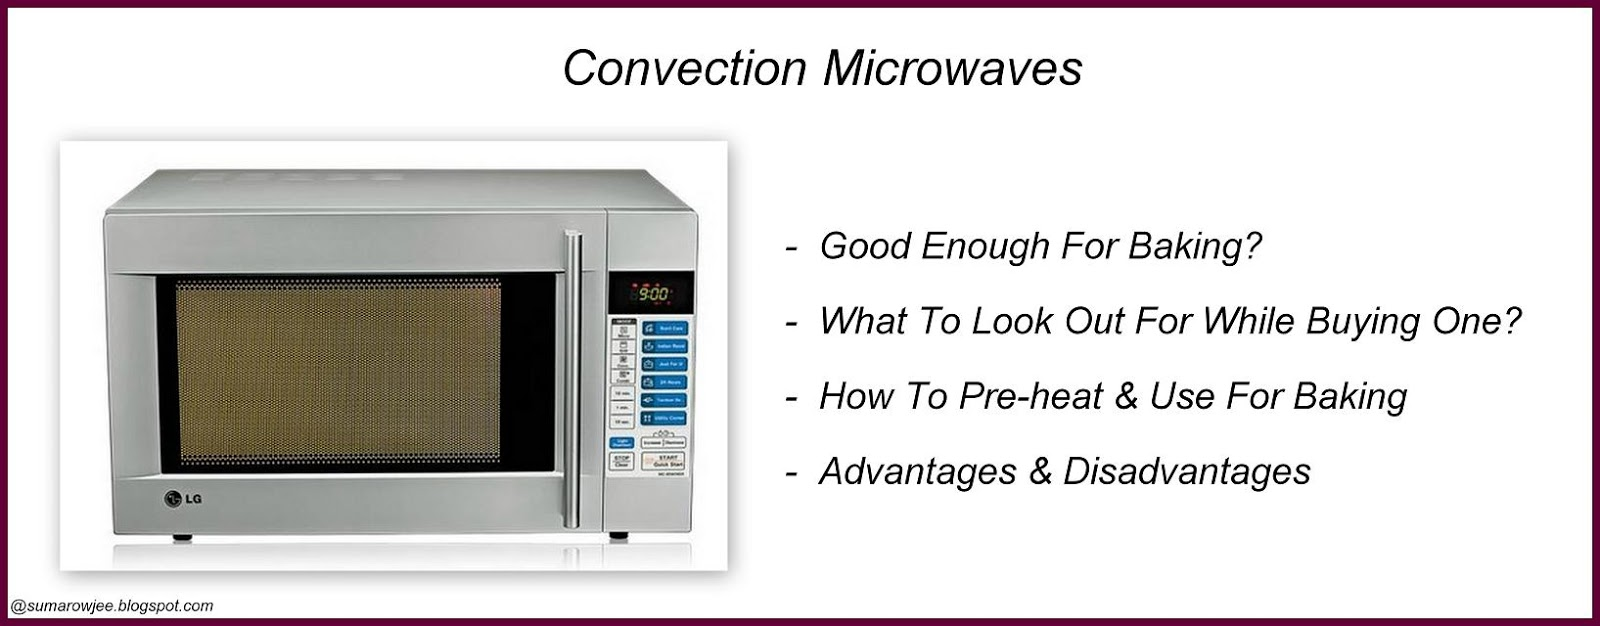 What Advantages Do Microwave Ovens Have Over Convection